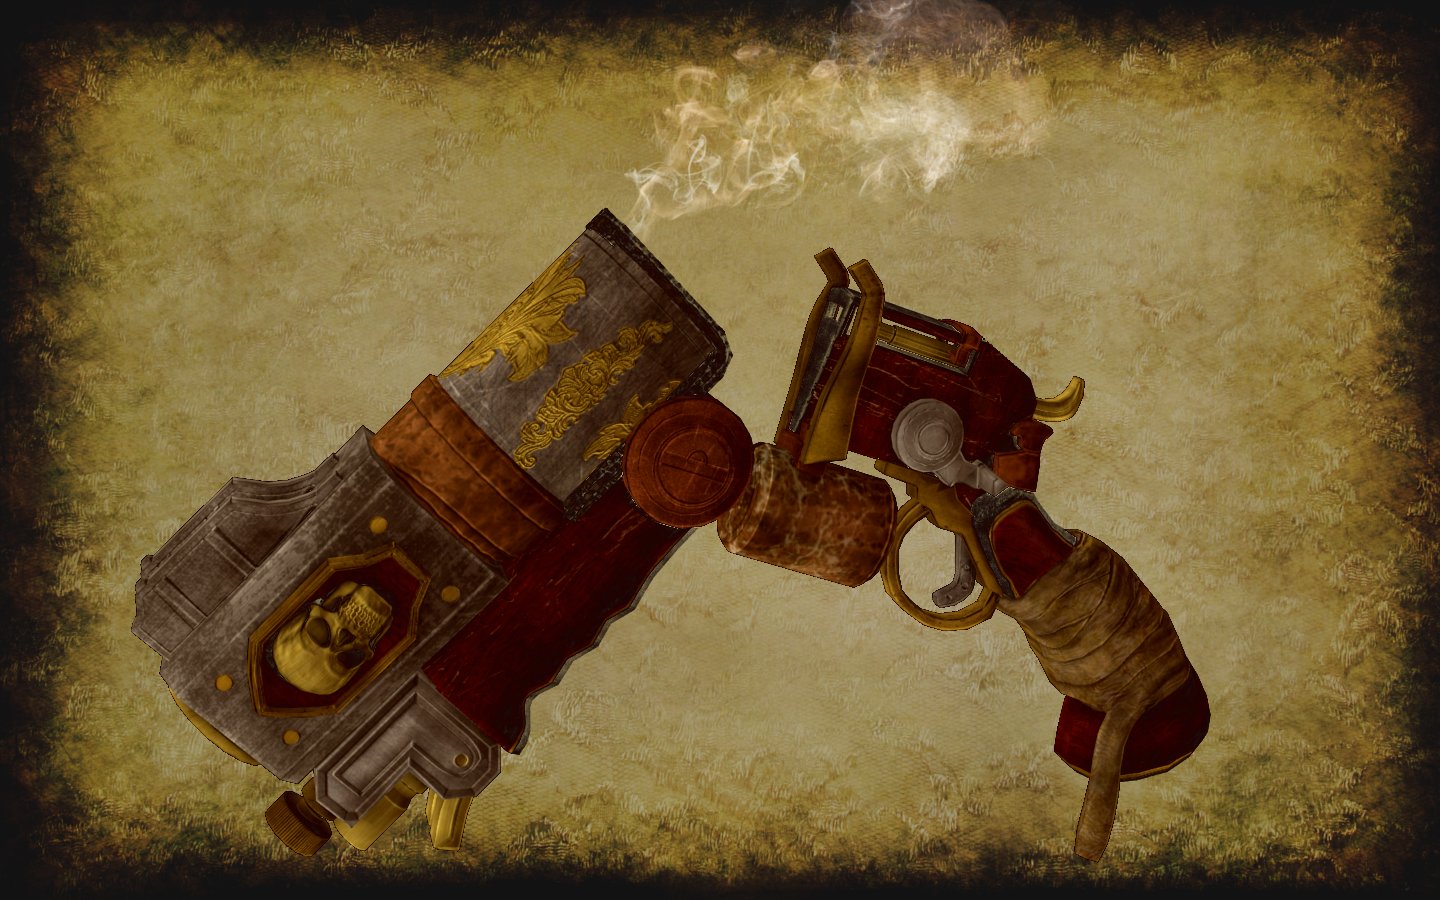 LordParagon SteamPistol Smoke by Saeblundr